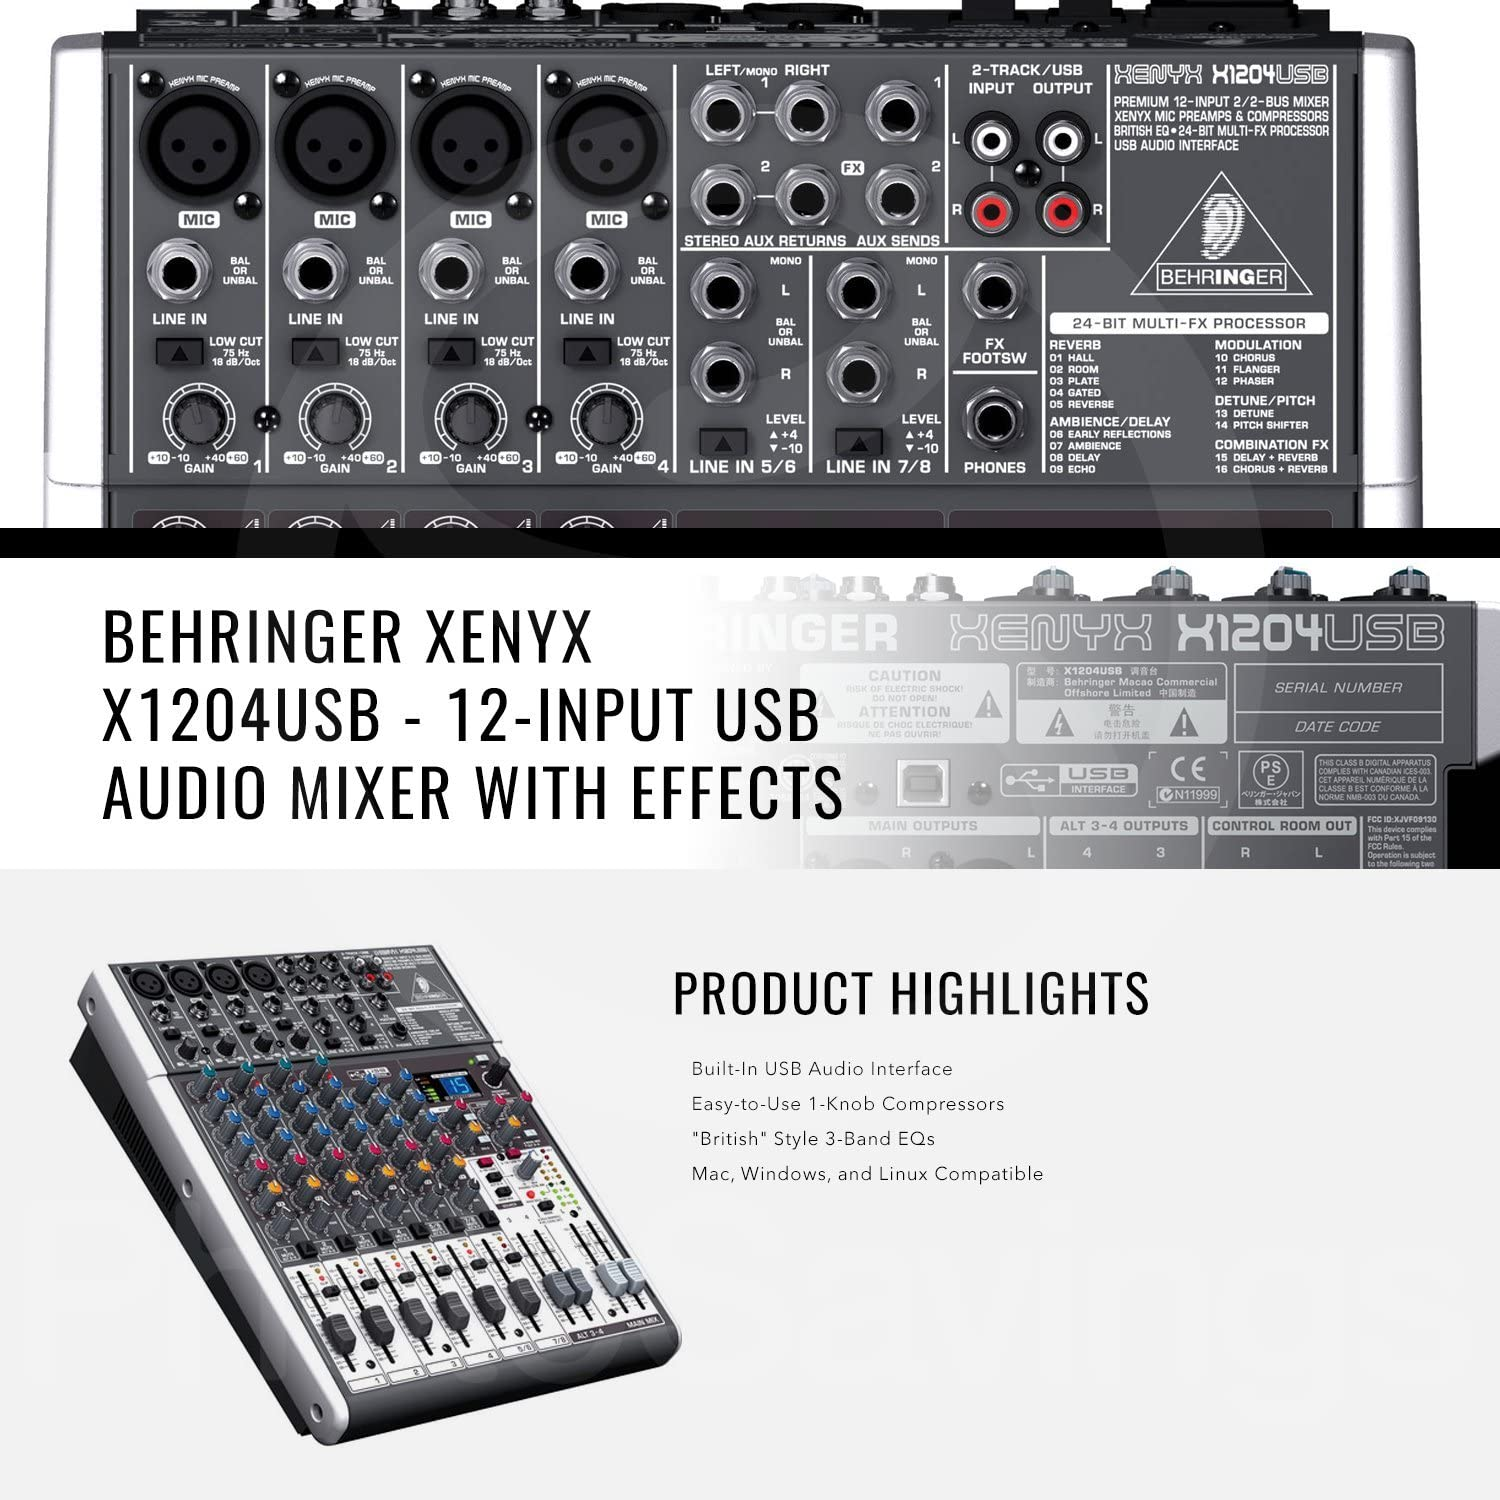 Behringer XENYX X1204USB 12-Input USB Audio Mixer with Effects and Basic Bundle